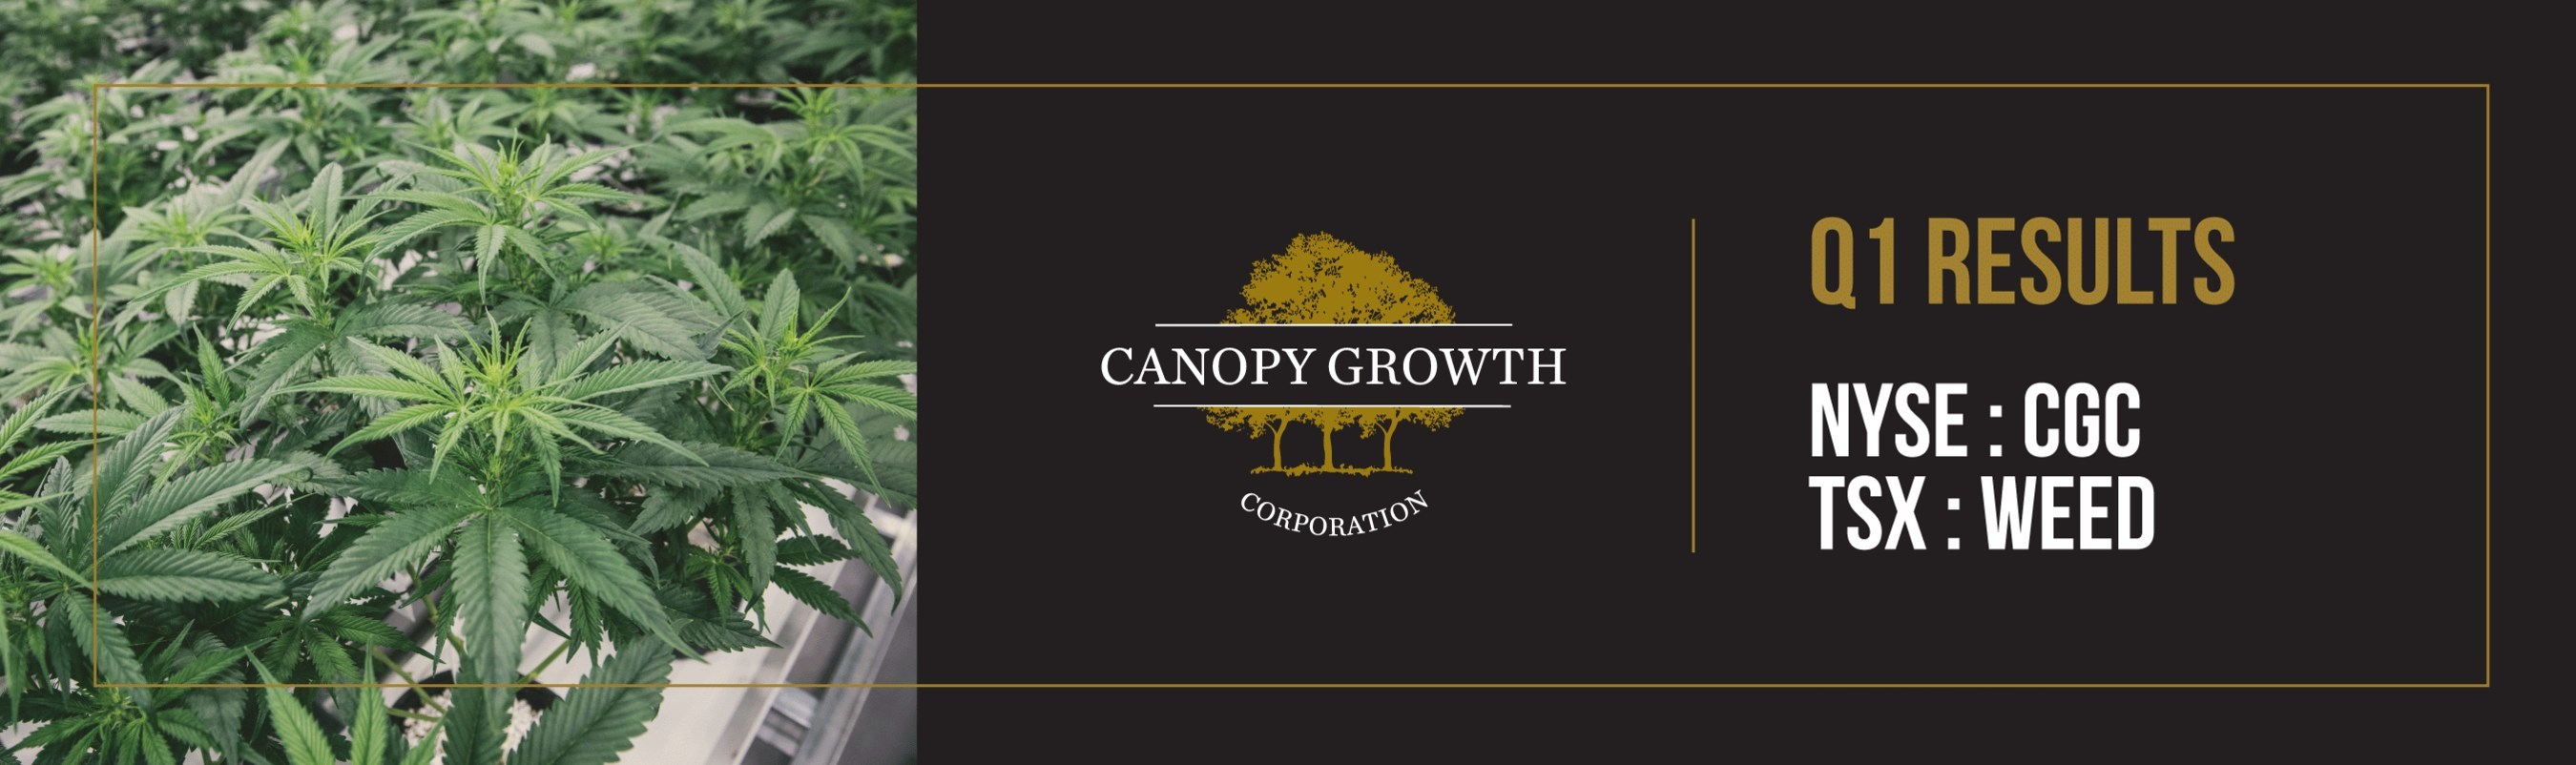 Canopy Growth drives revenue with 94% increase in recreational dried cannabis sales in first quarter of fiscal 2020